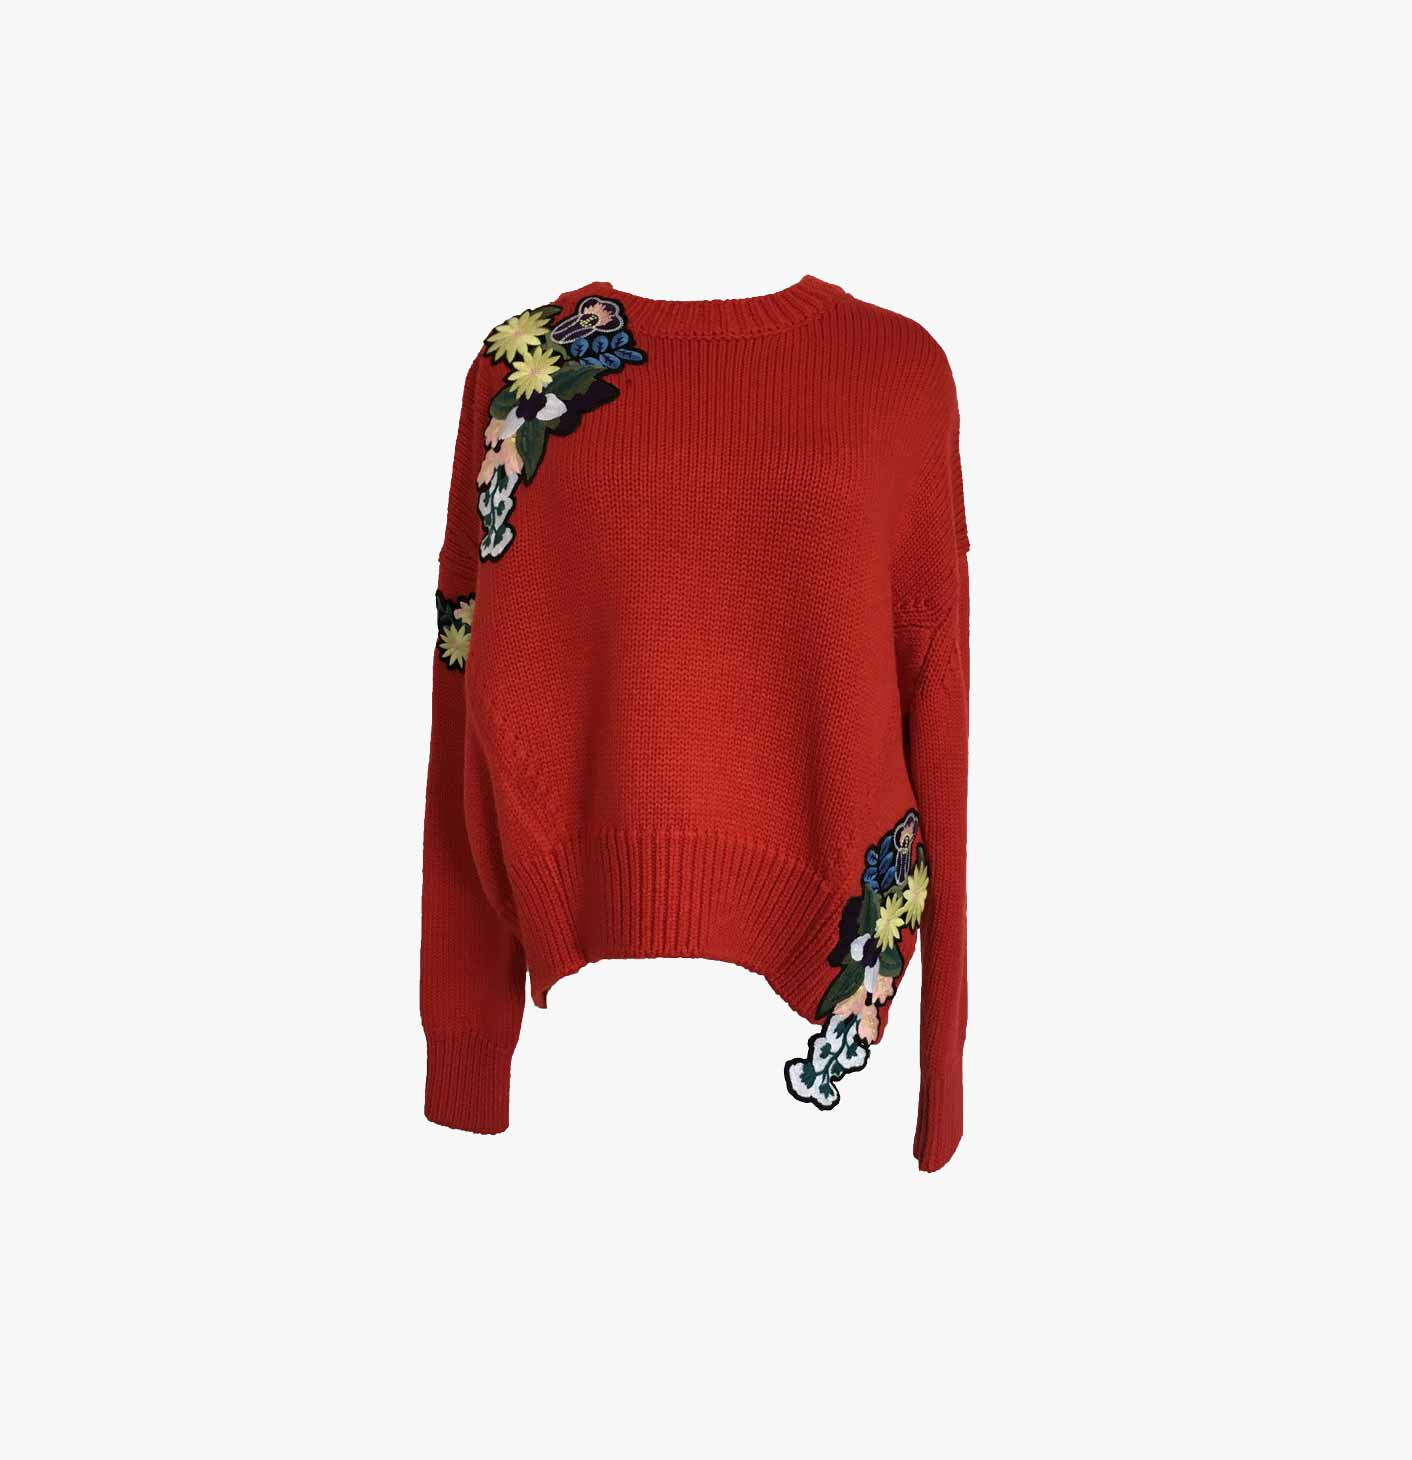 Applique Oversize Pull-over